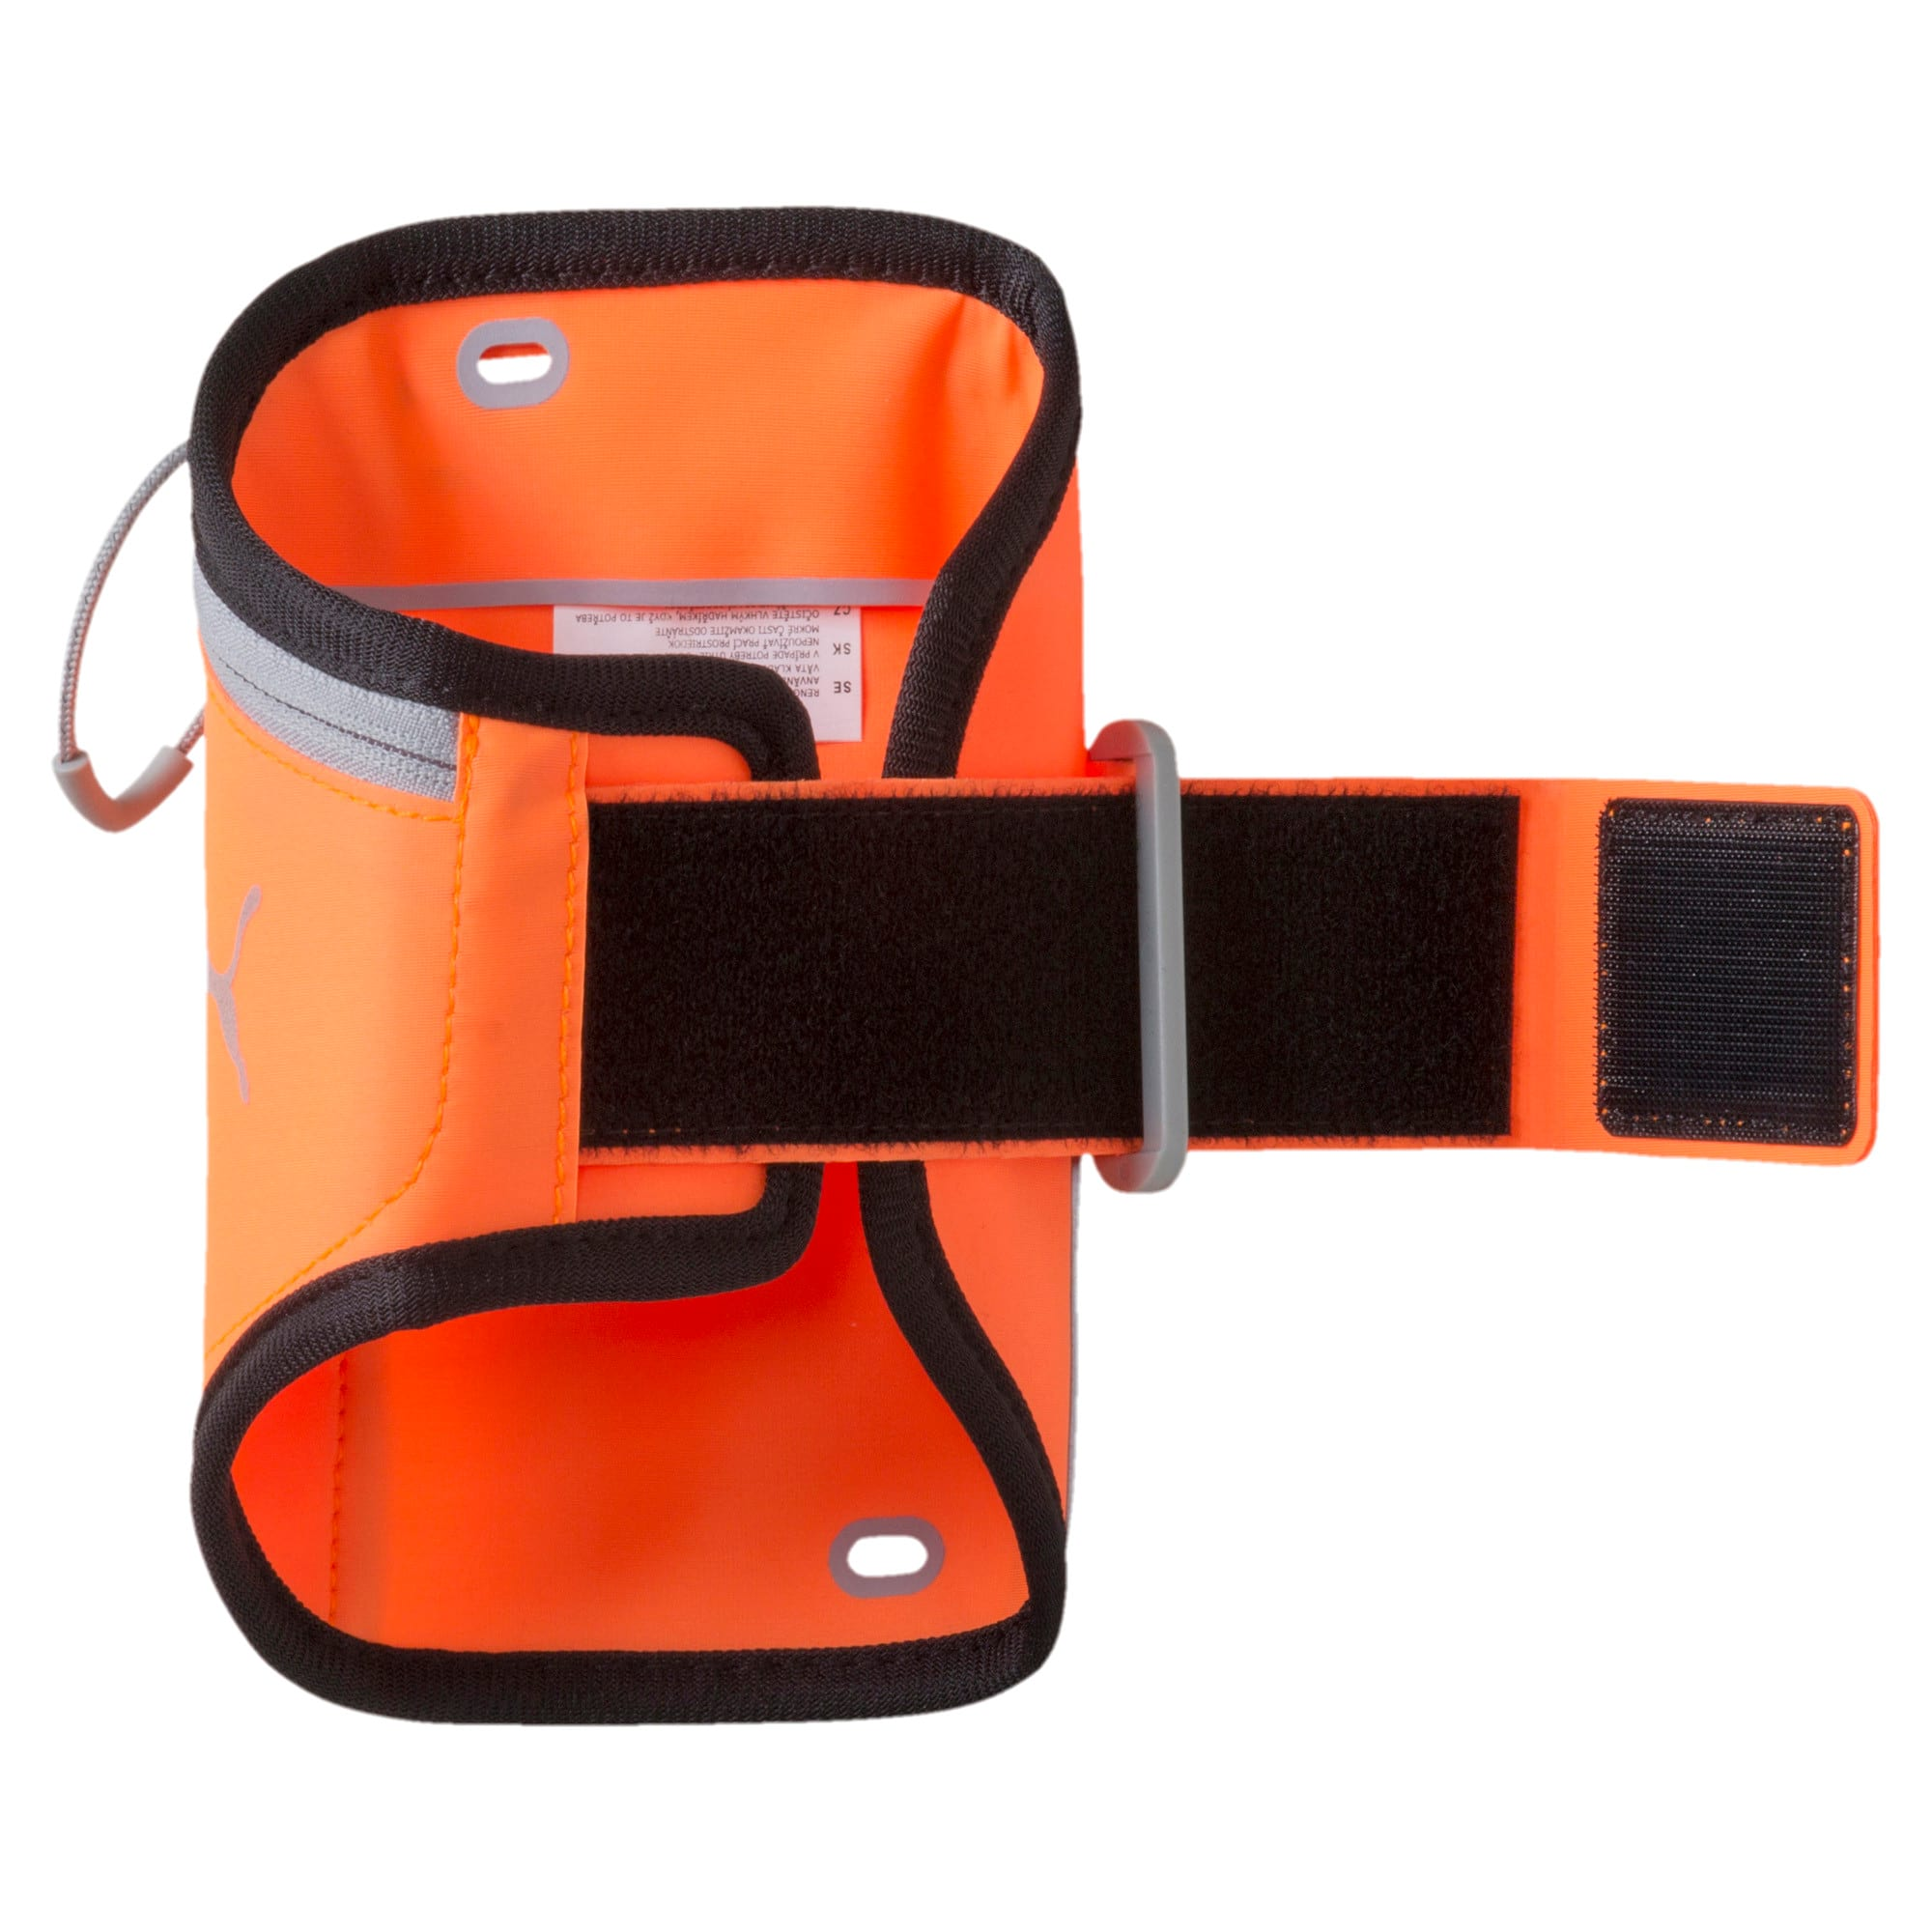 Thumbnail 2 of Running iPhone Arm Pocket, Shocking Orange-Black-Quarry, medium-IND